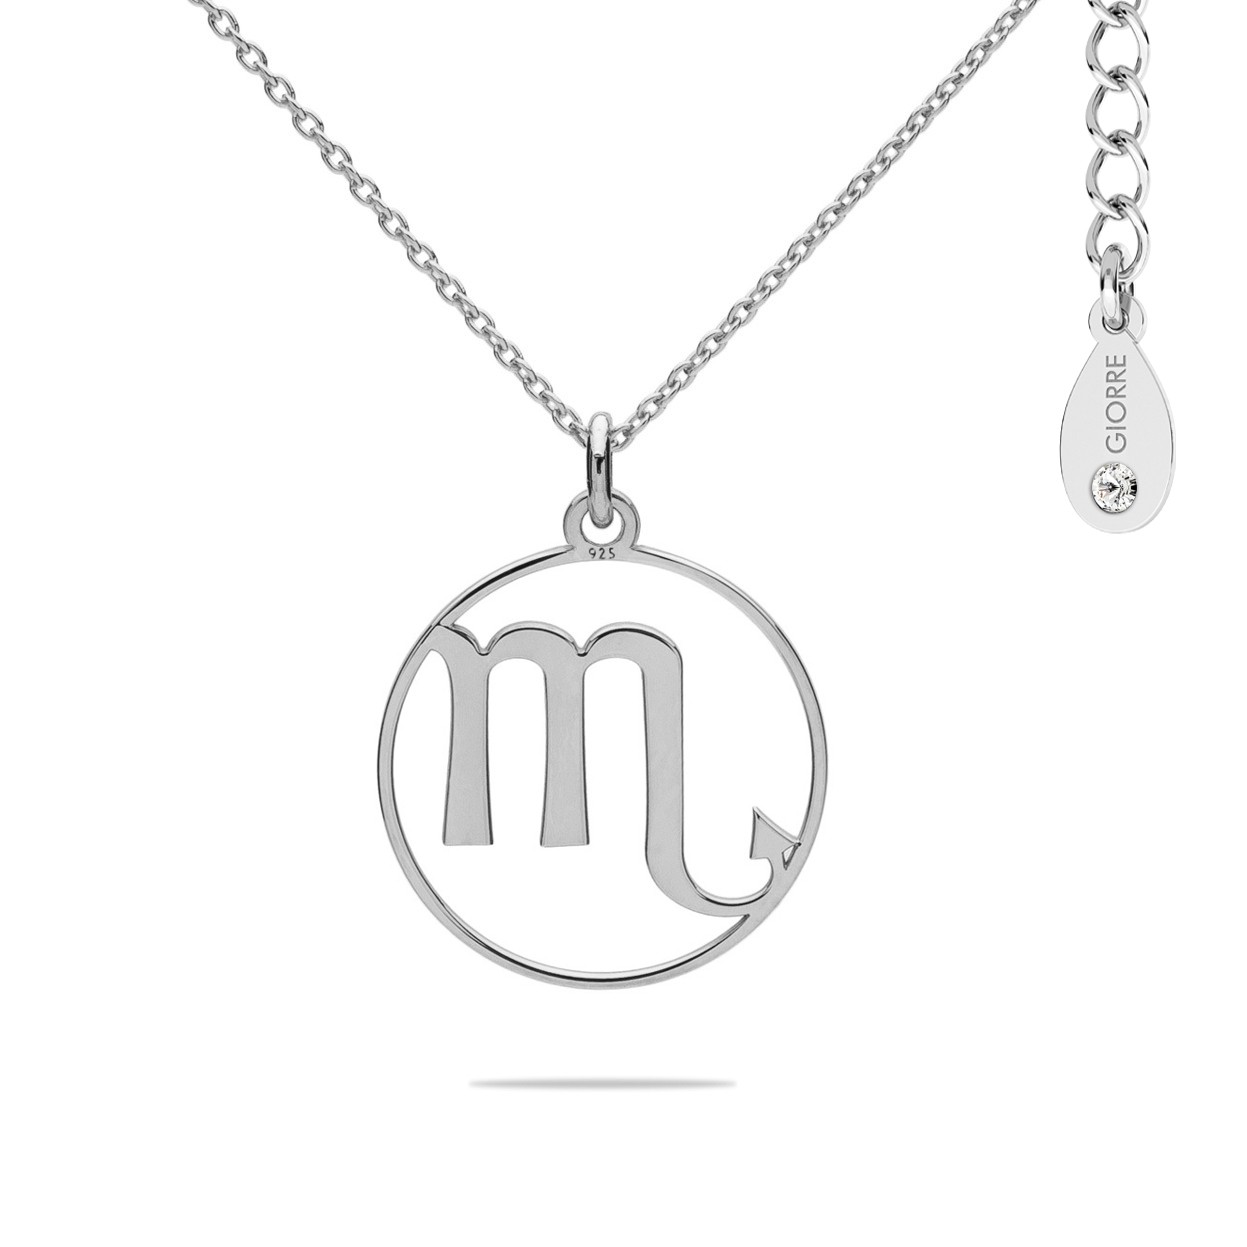 SCORPION zodiac sign necklace with Swarovski Crystals sterling silver 925